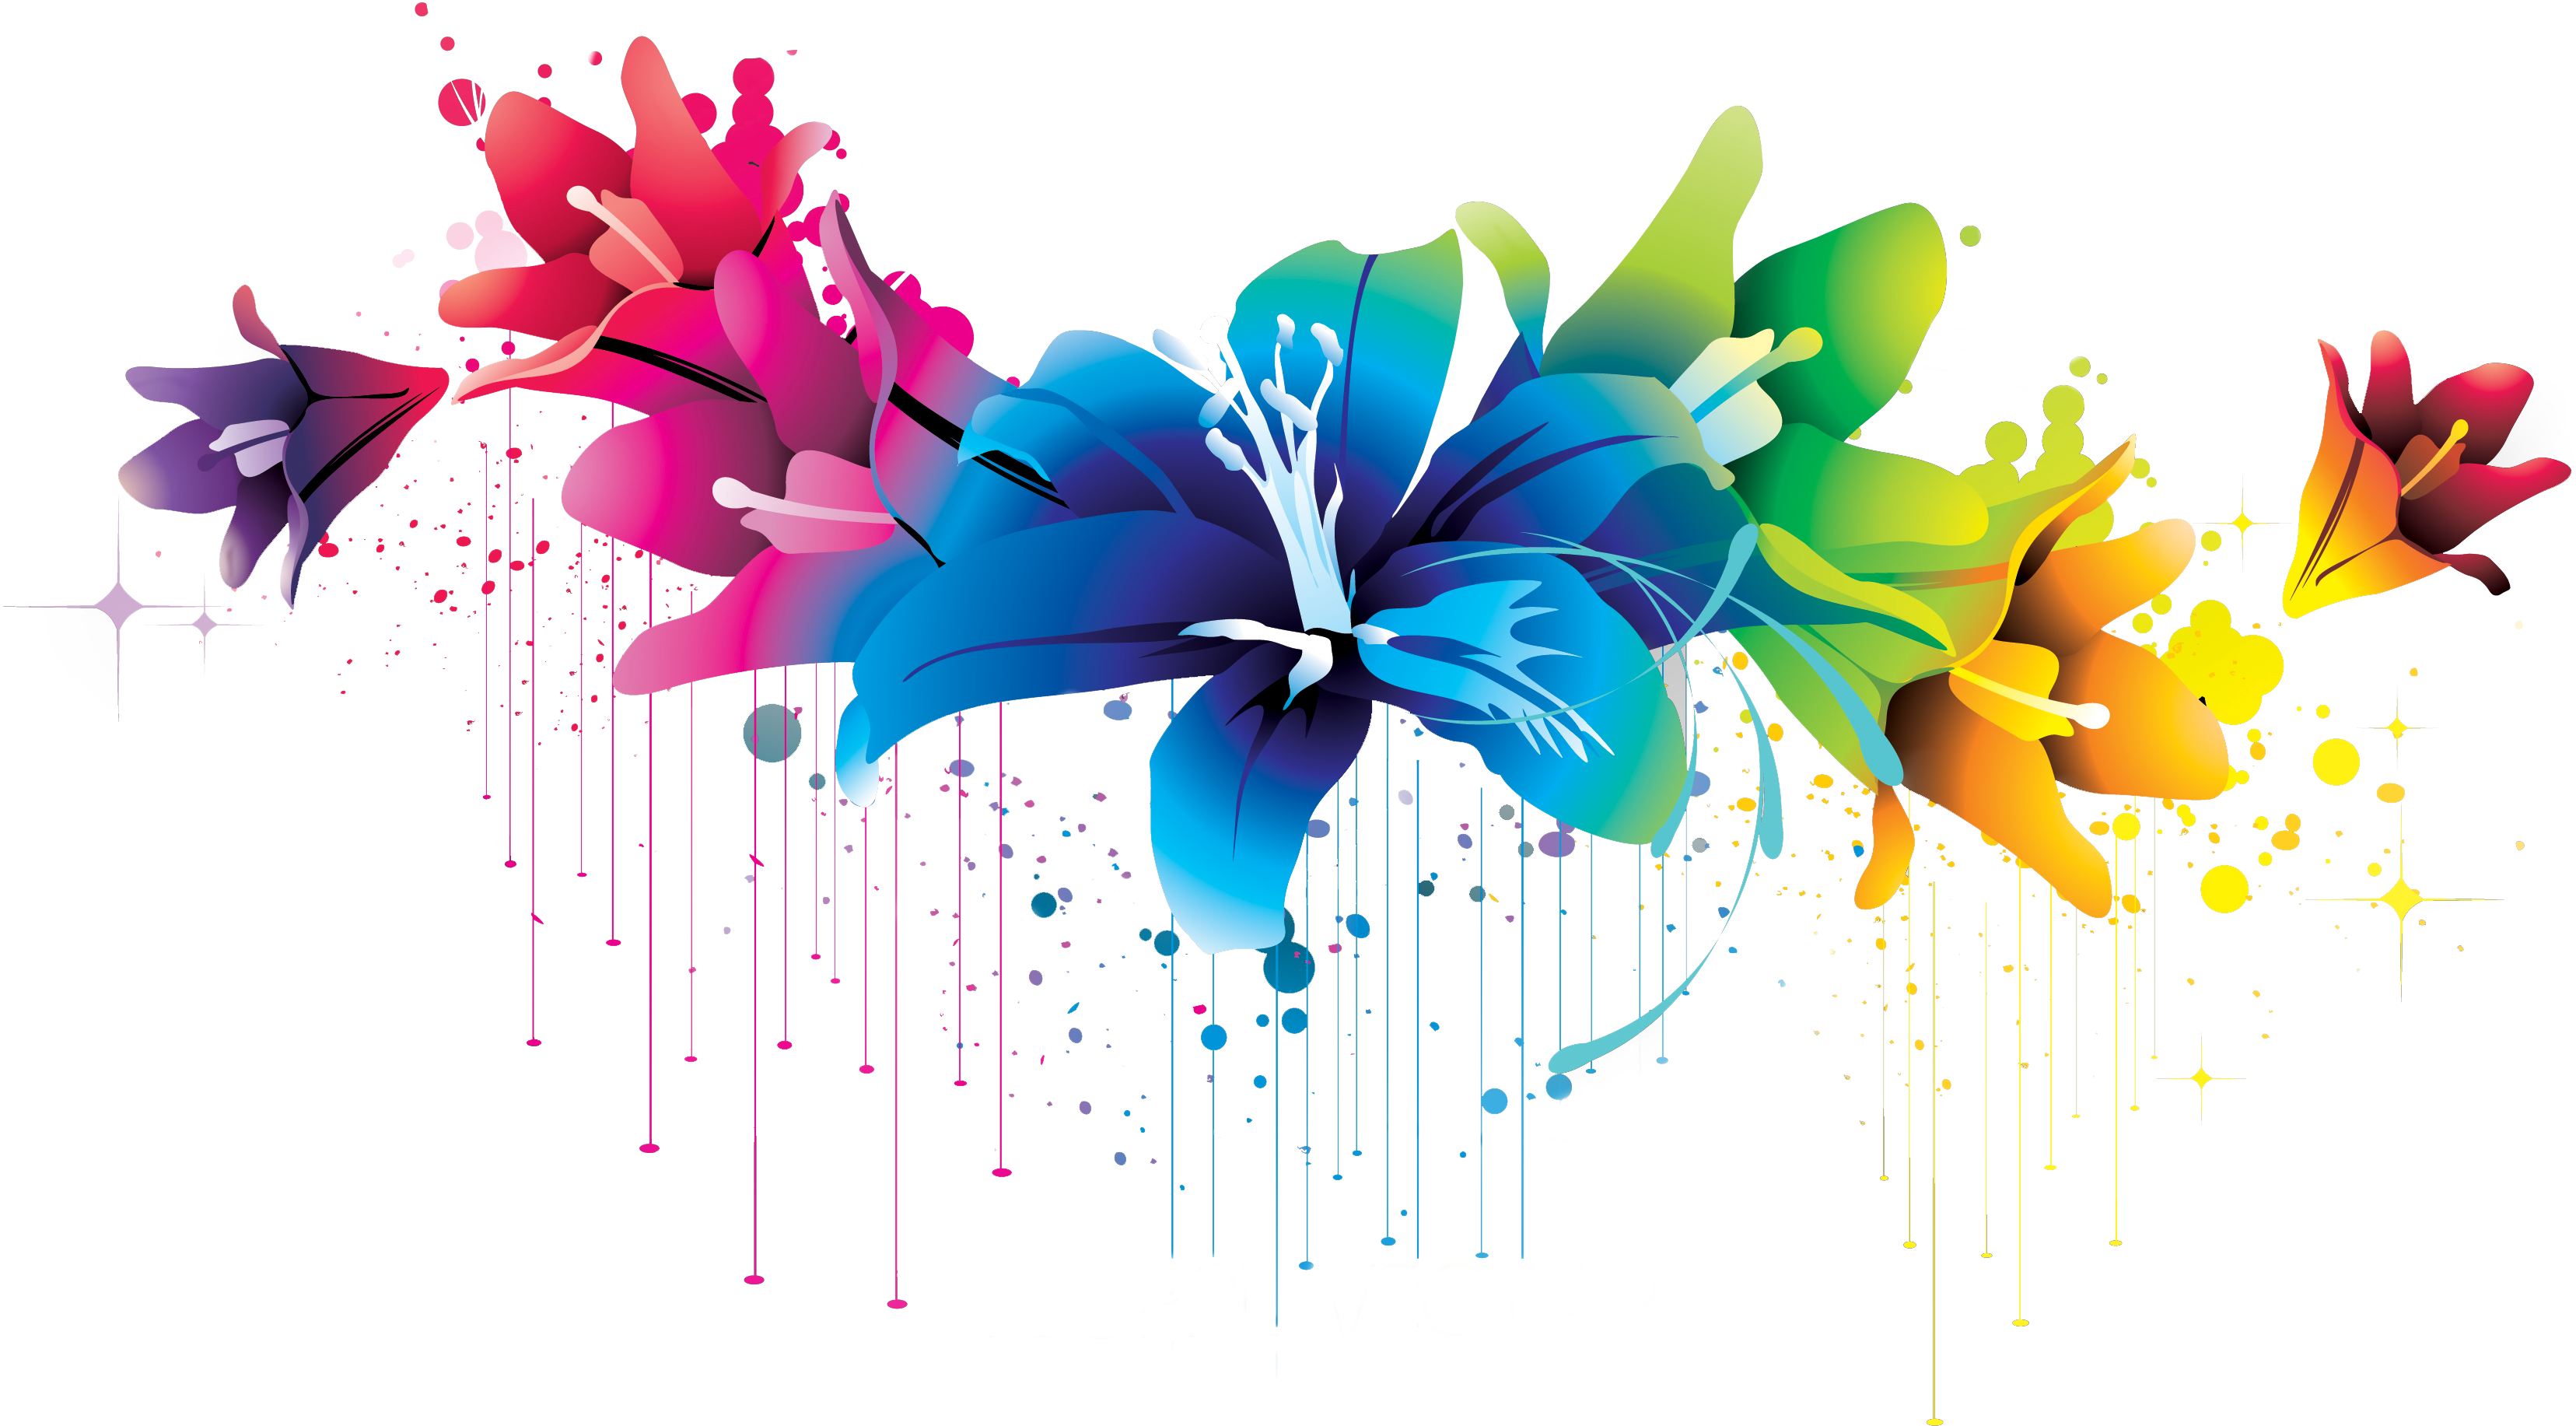 Pin By Carmen Dungan On Colourfull Colorful Flowers Free Vector Backgrounds Trendy Flowers